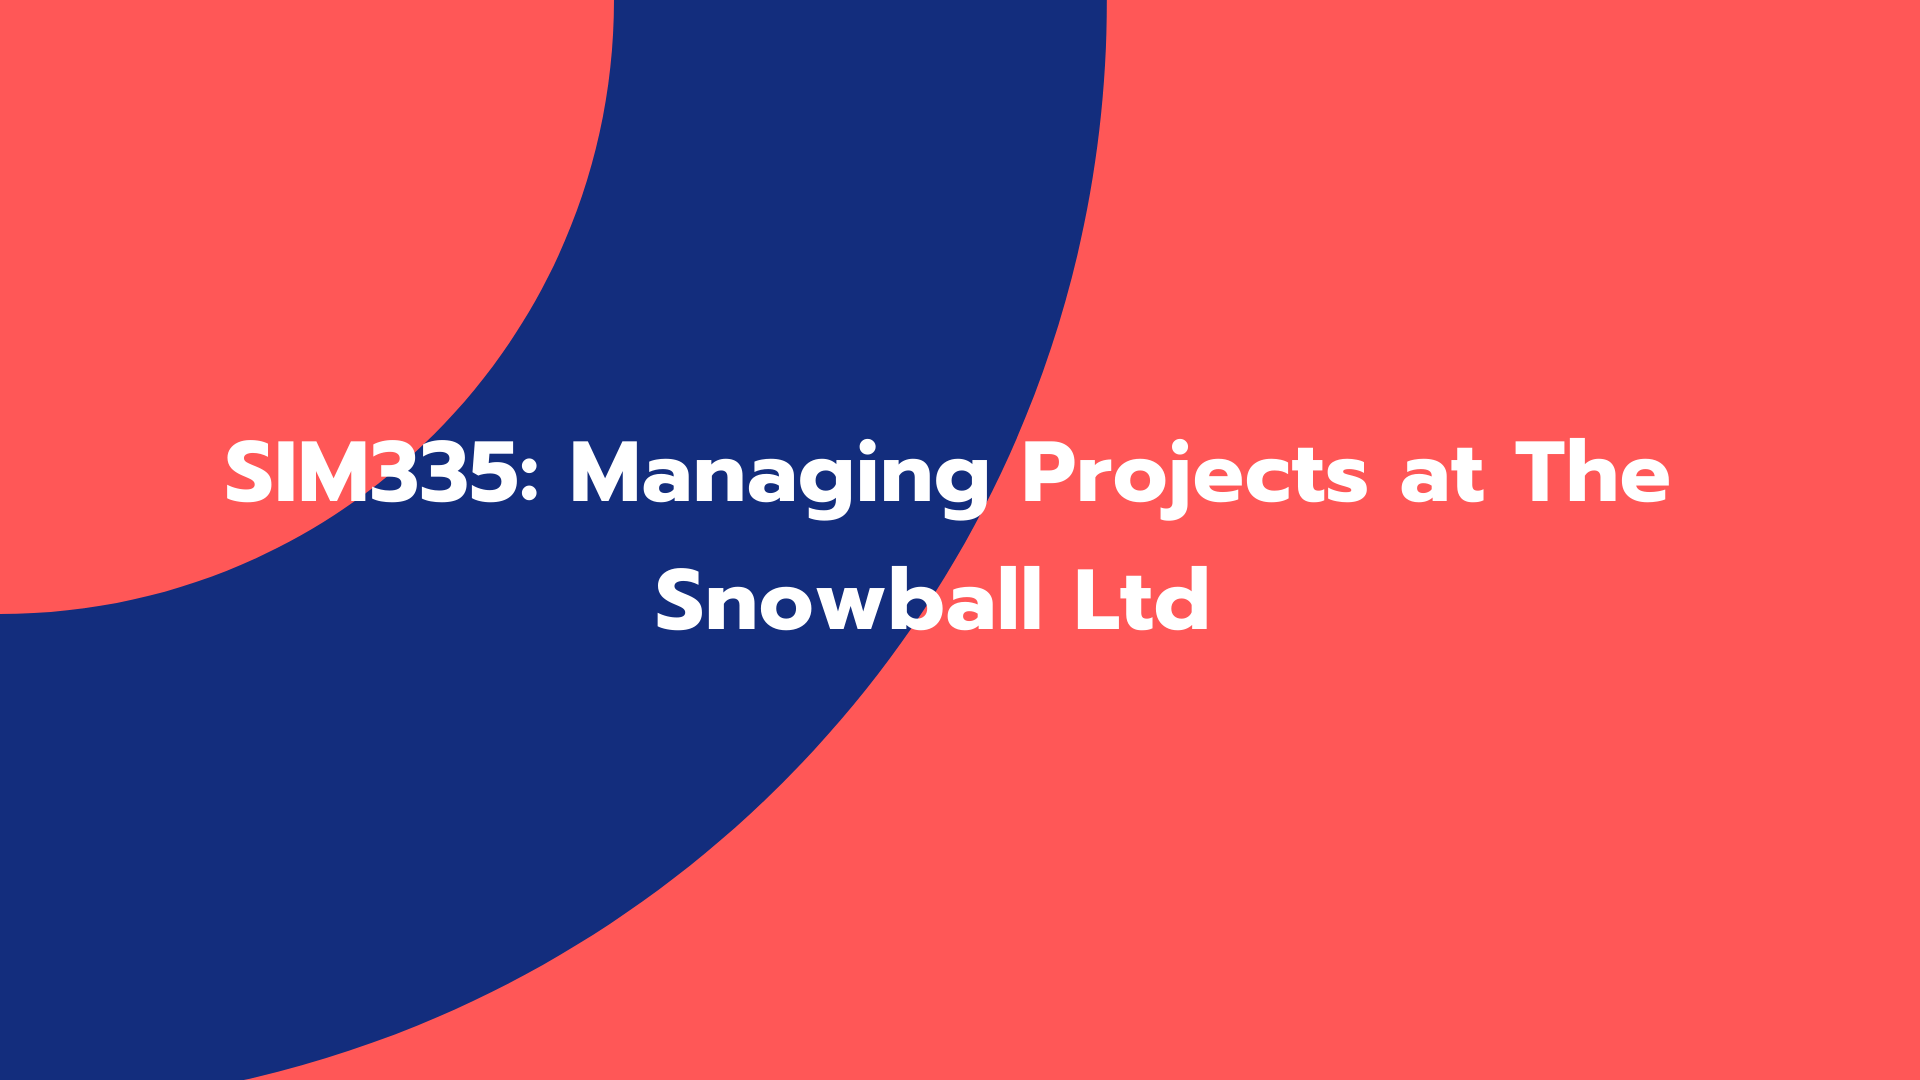 SIM335: Managing Projects at The Snowball Ltd